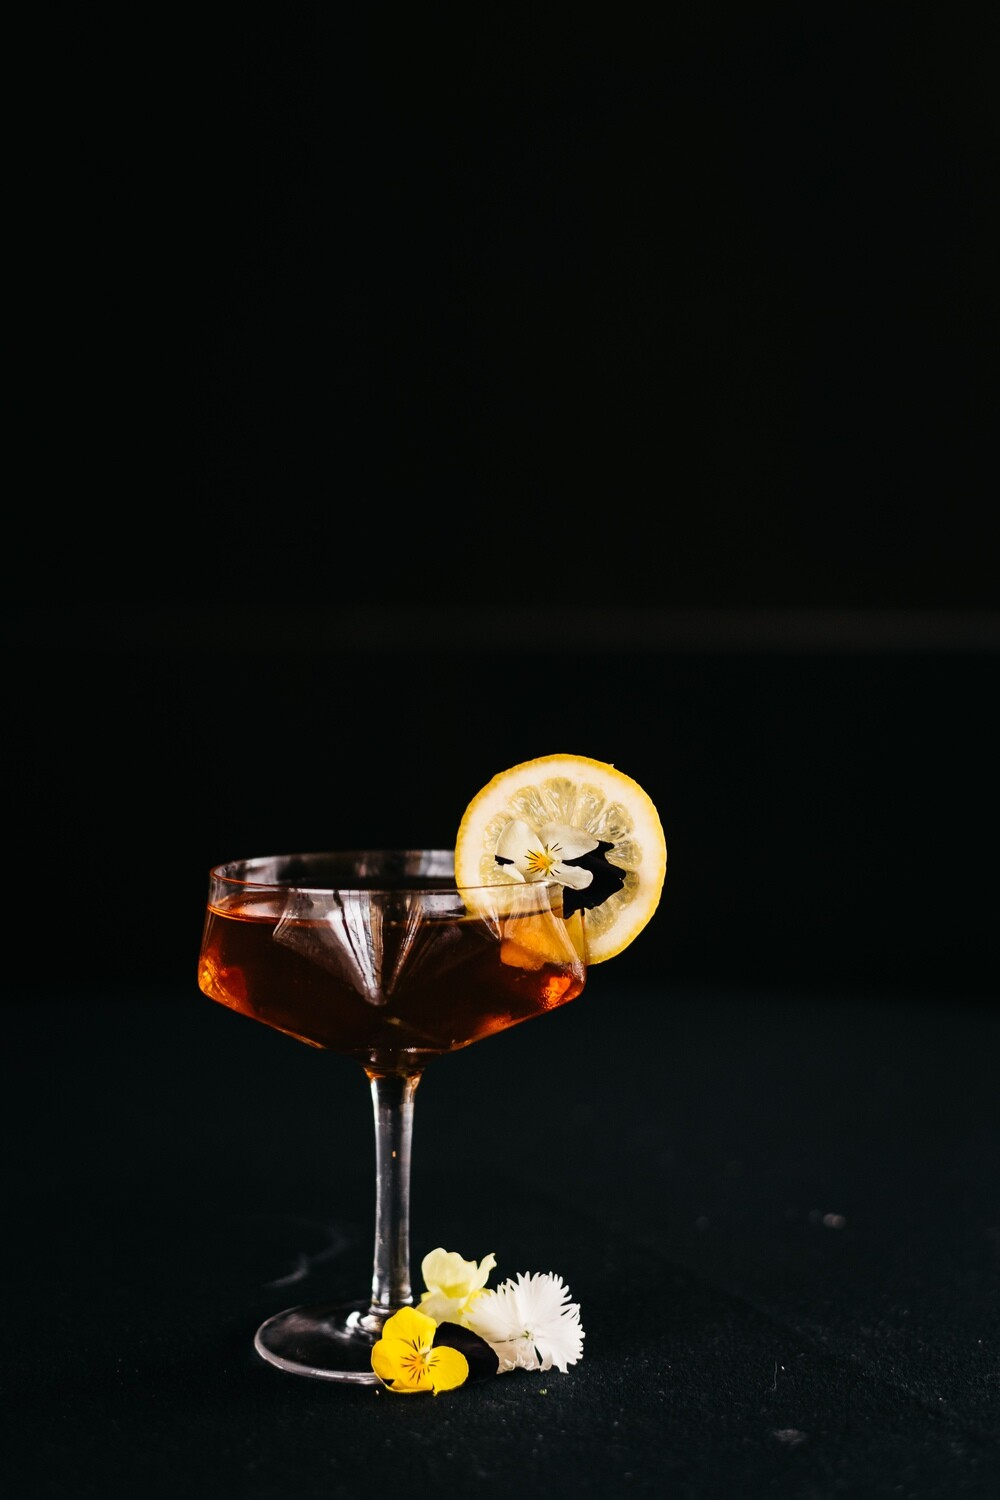 Carryout Cocktail - Hanky Panky